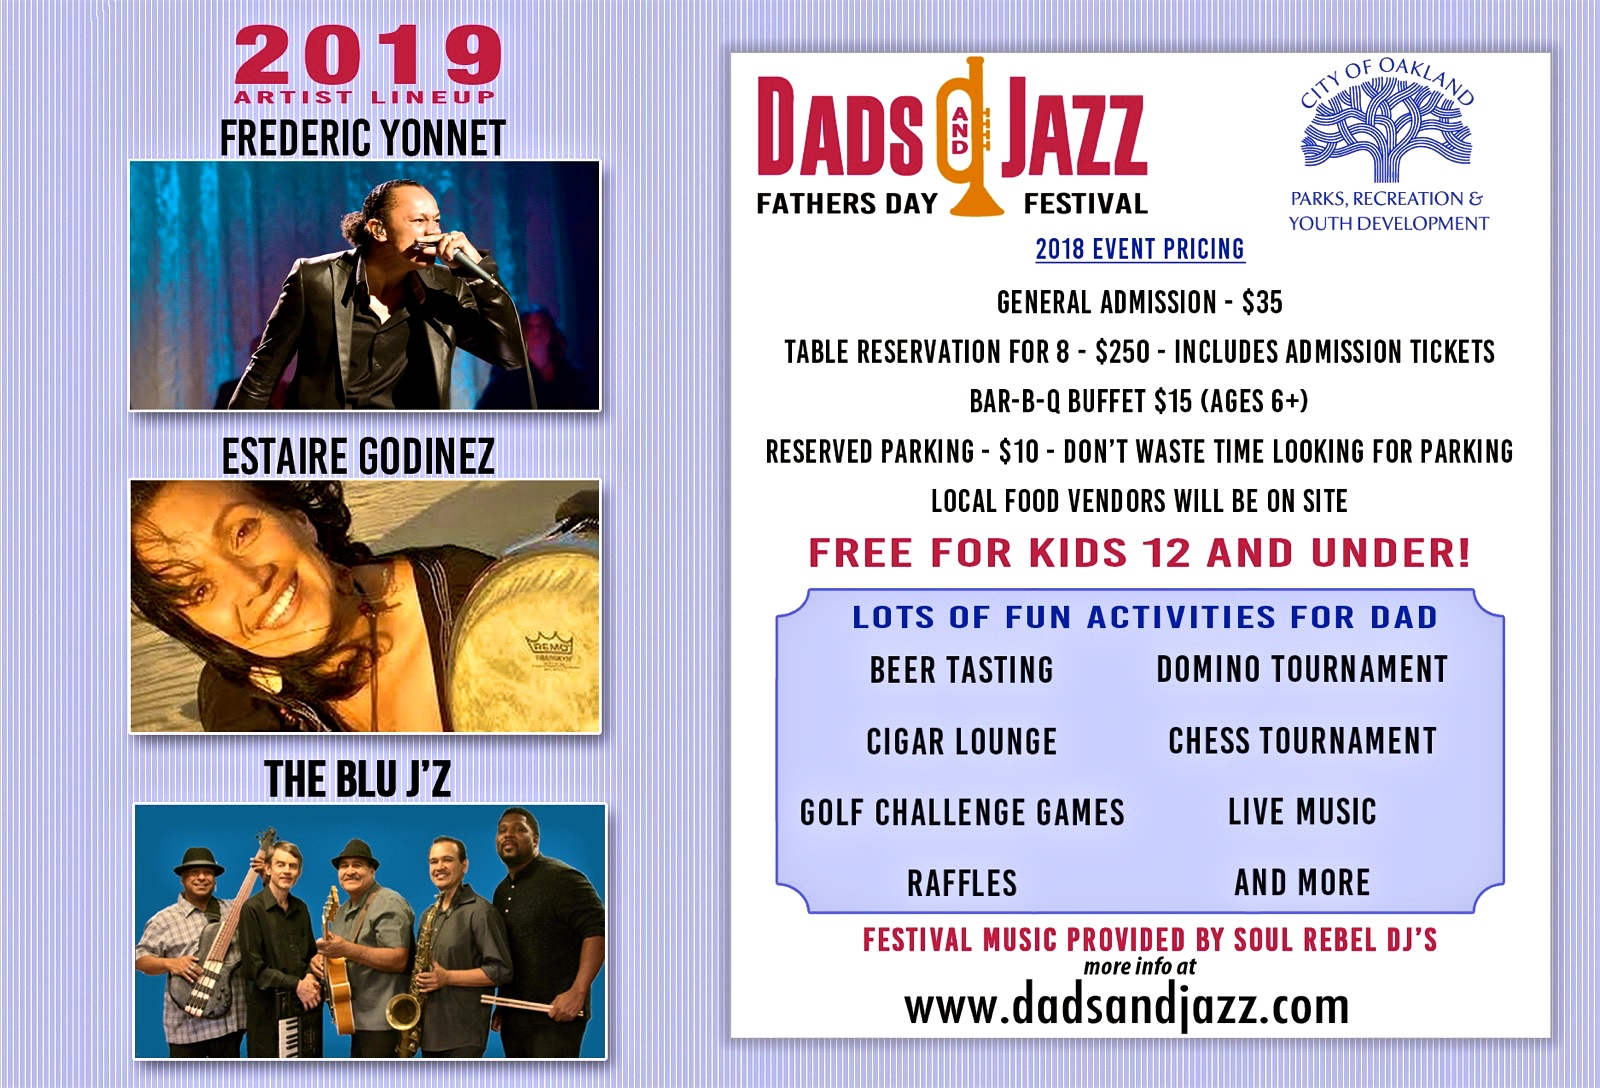 Rolando Morales will join Estaire Godinez for the Dads and Jazz Concert at Dunsmuir House